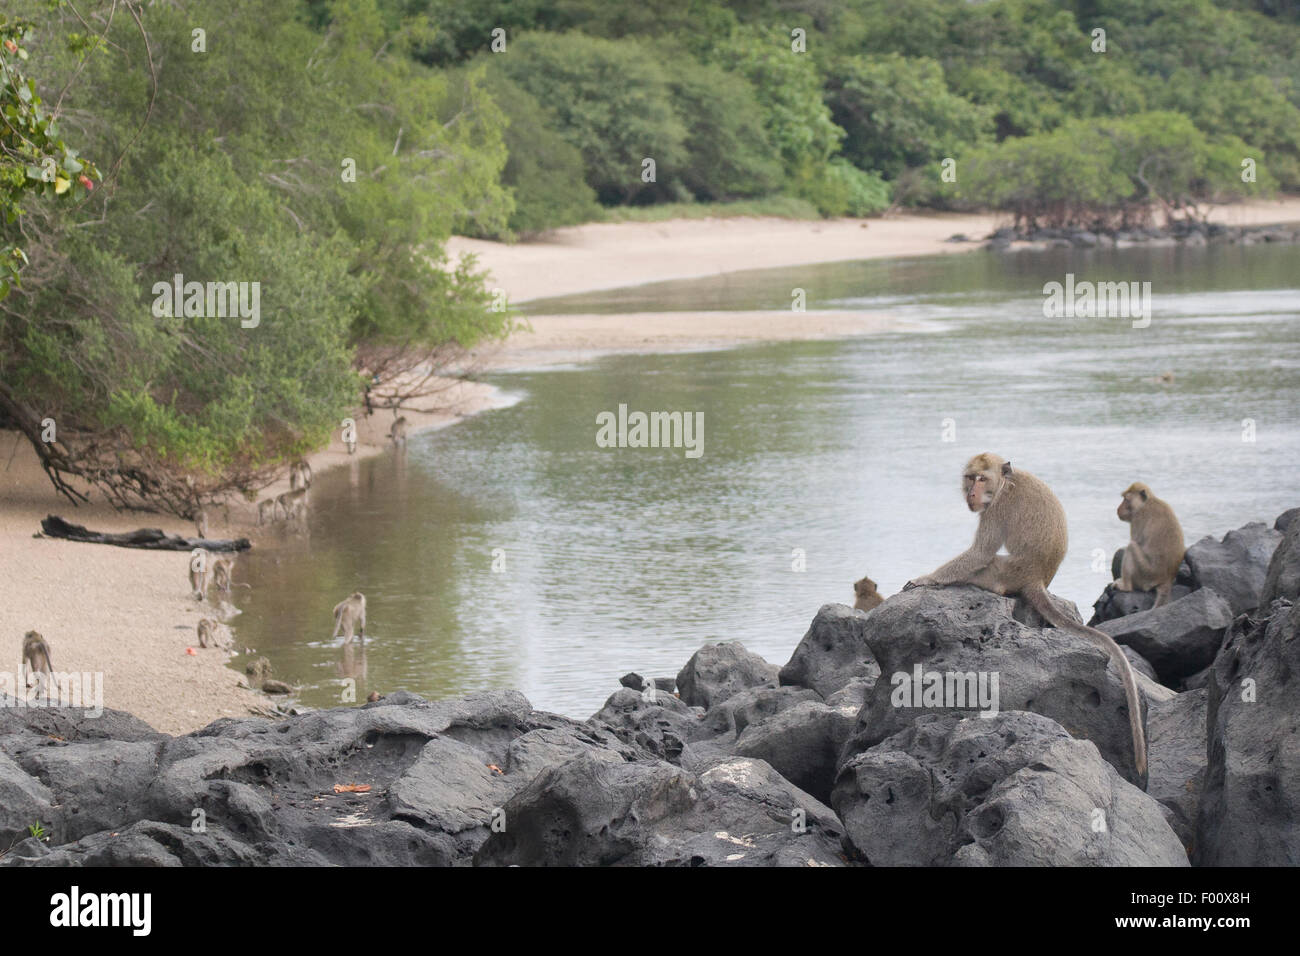 Troupe of crab-eating macaques foraging for food along the coast in Java, Indonesia. - Stock Image